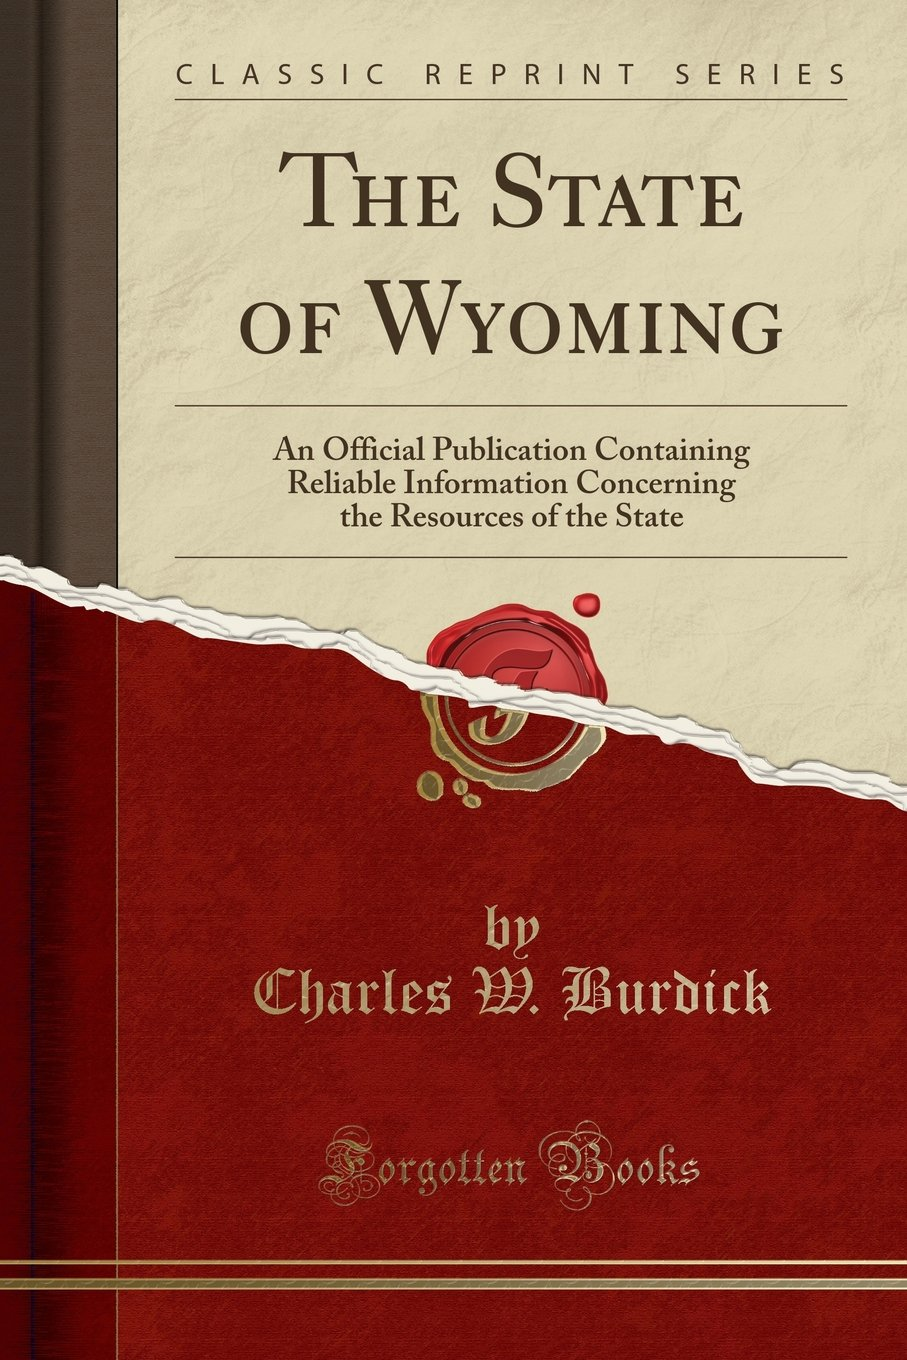 Download The State of Wyoming: An Official Publication Containing Reliable Information Concerning the Resources of the State (Classic Reprint) PDF